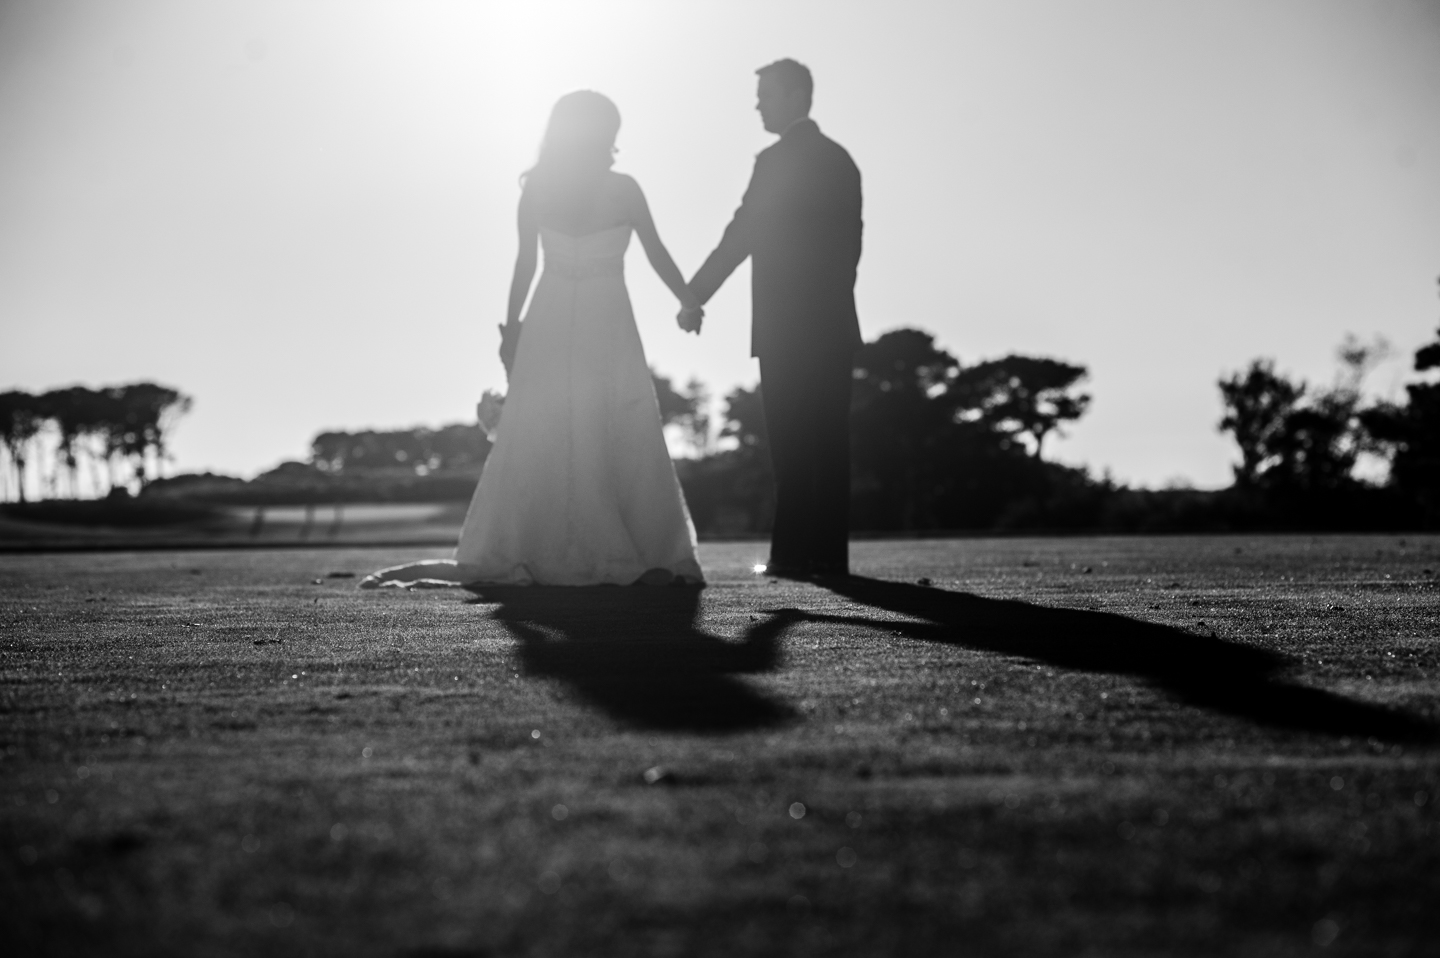 silhouette of bride and groom holding hands on golf course